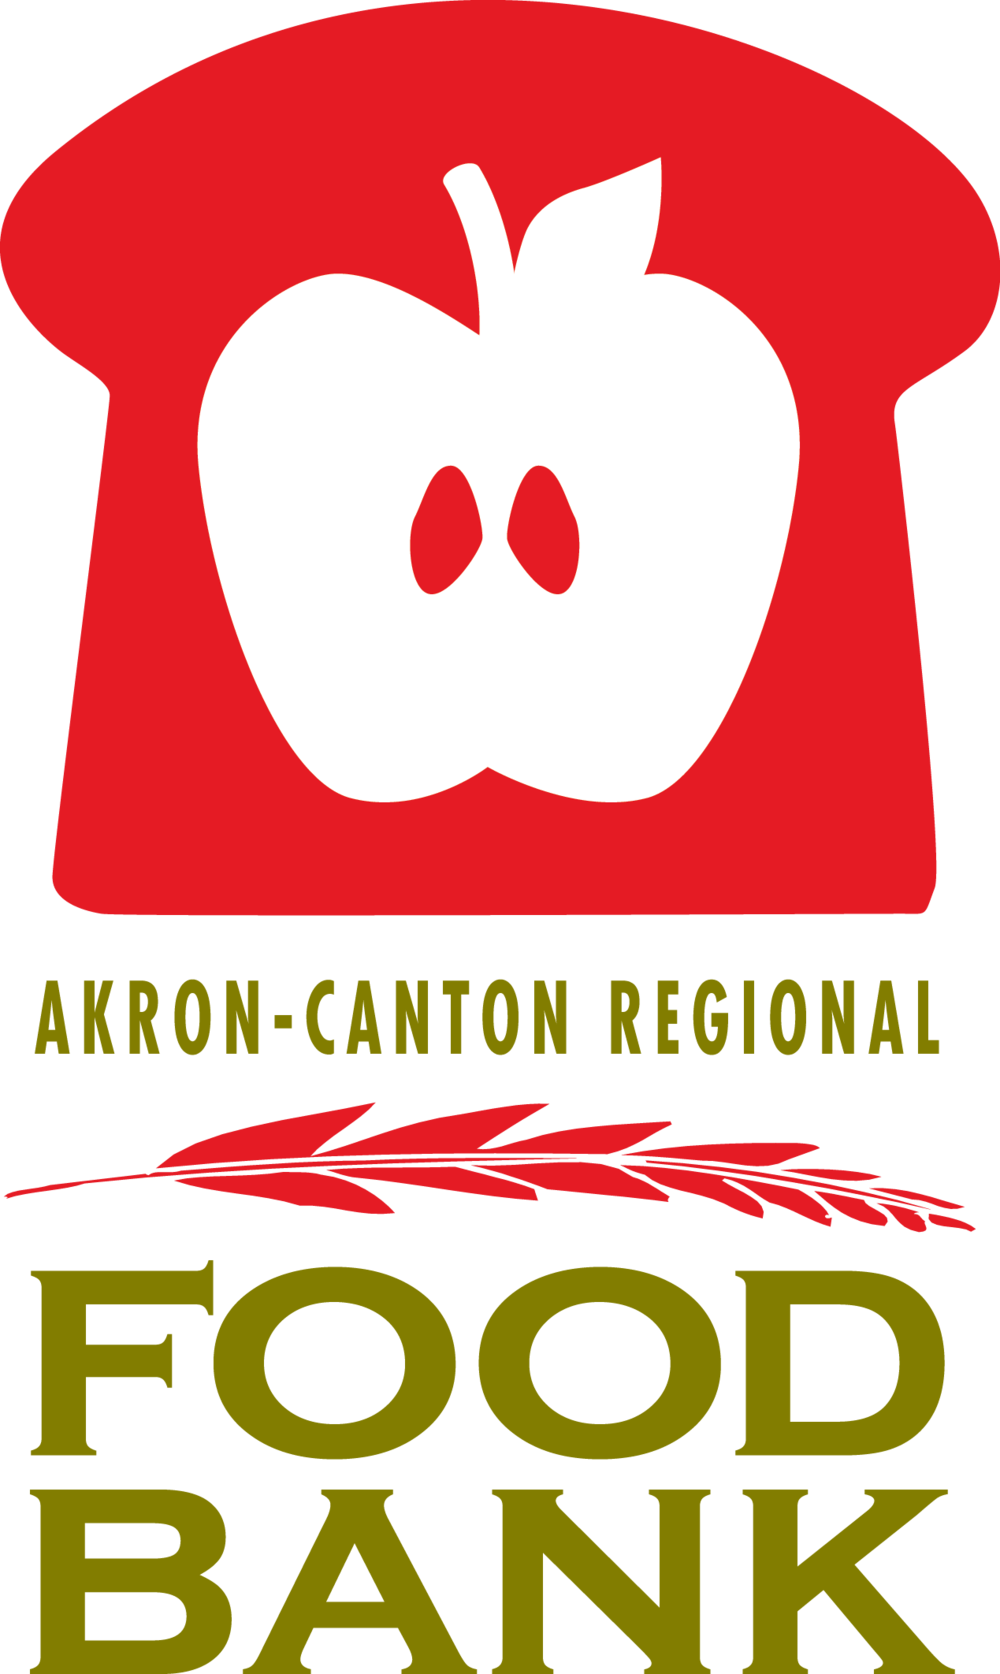 food bank logo final 2c.png